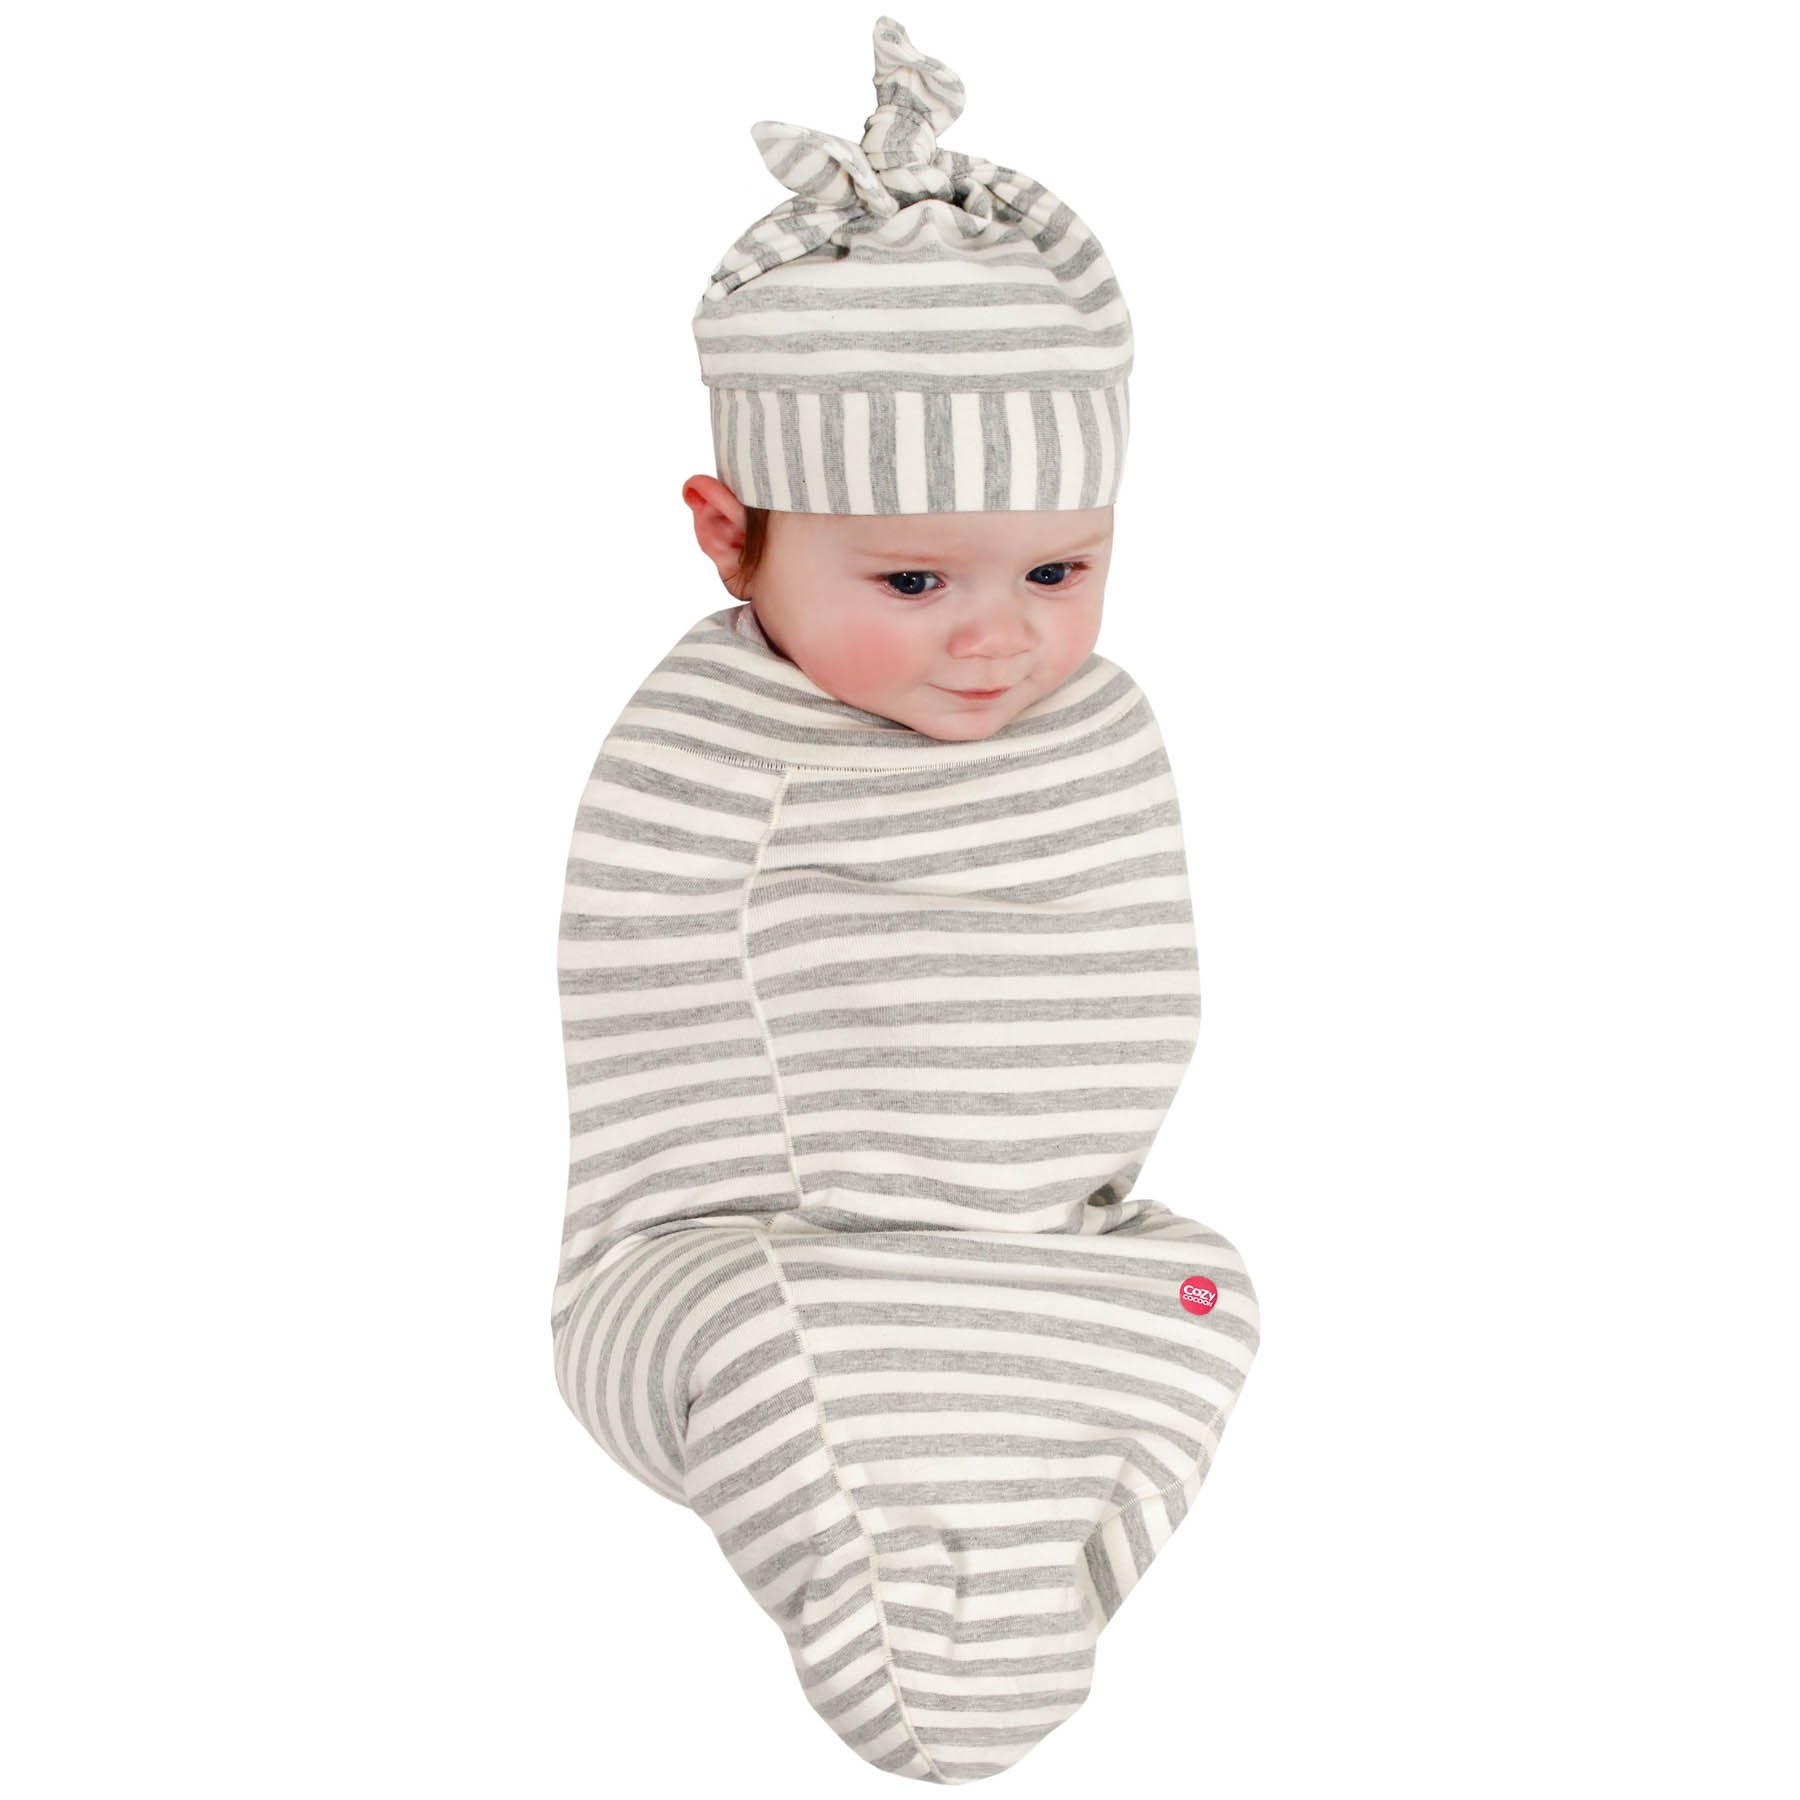 Cozy Cocoon Baby Cocoon Swaddle and Matching Hat, Gray Stripes, 0-3 months by Cozy Cocoon (Image #1)